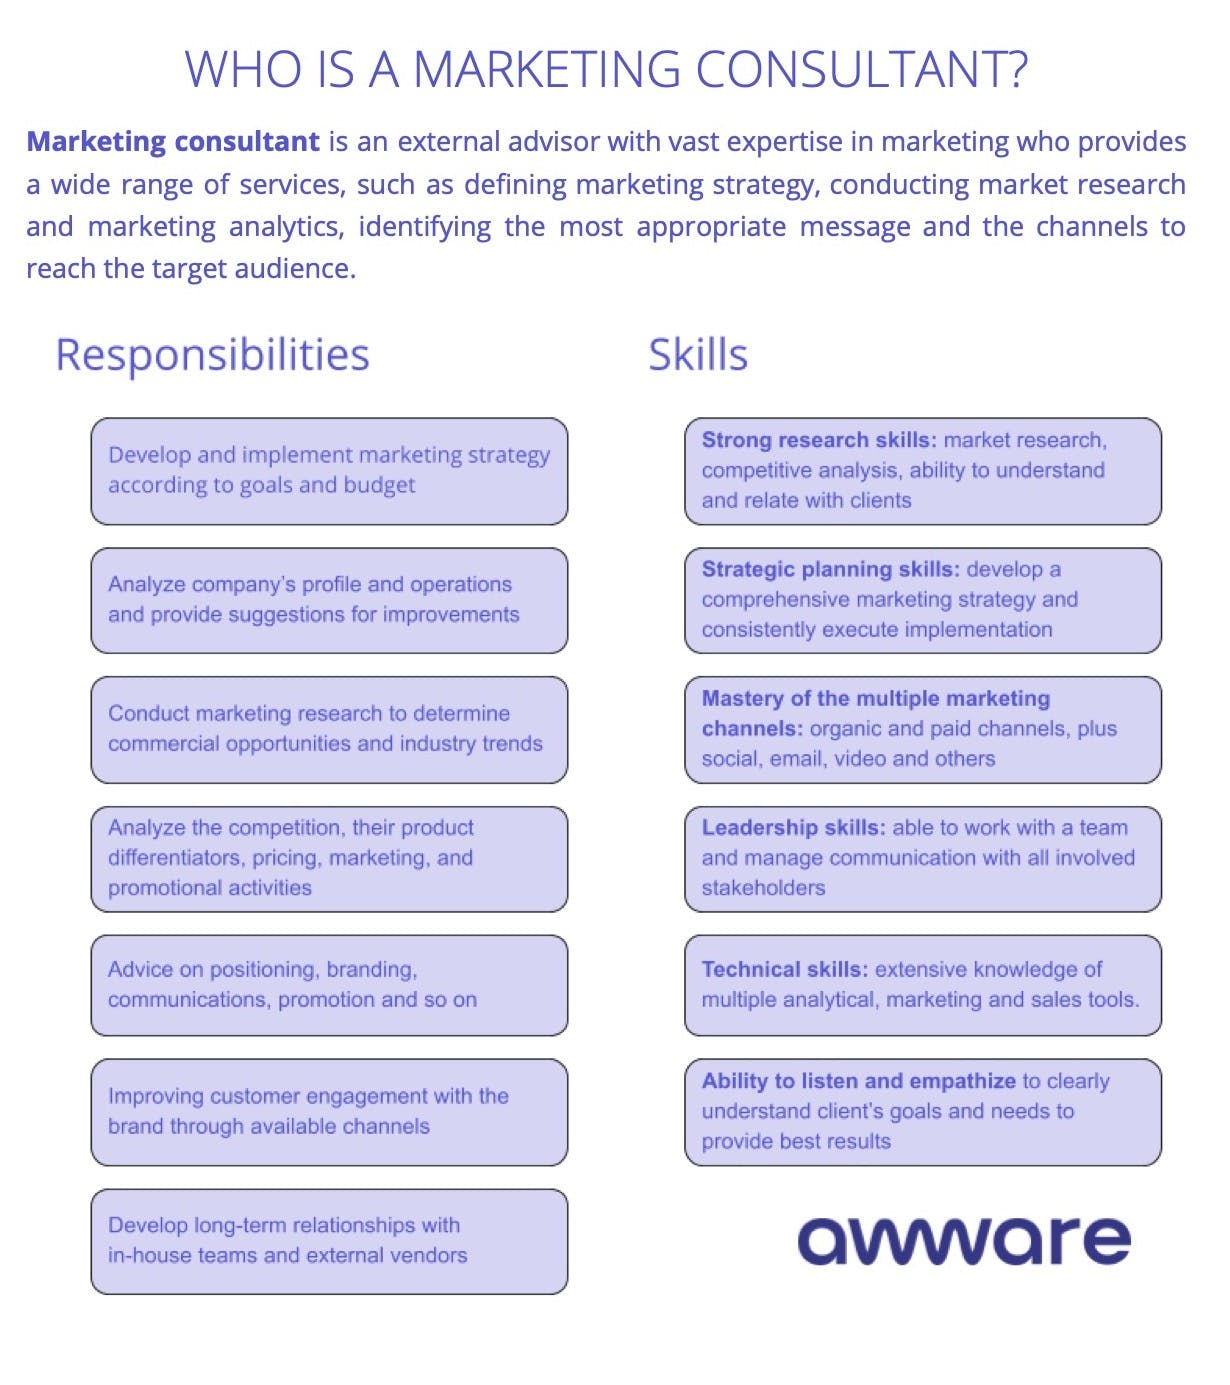 Who is a marketing consultant?